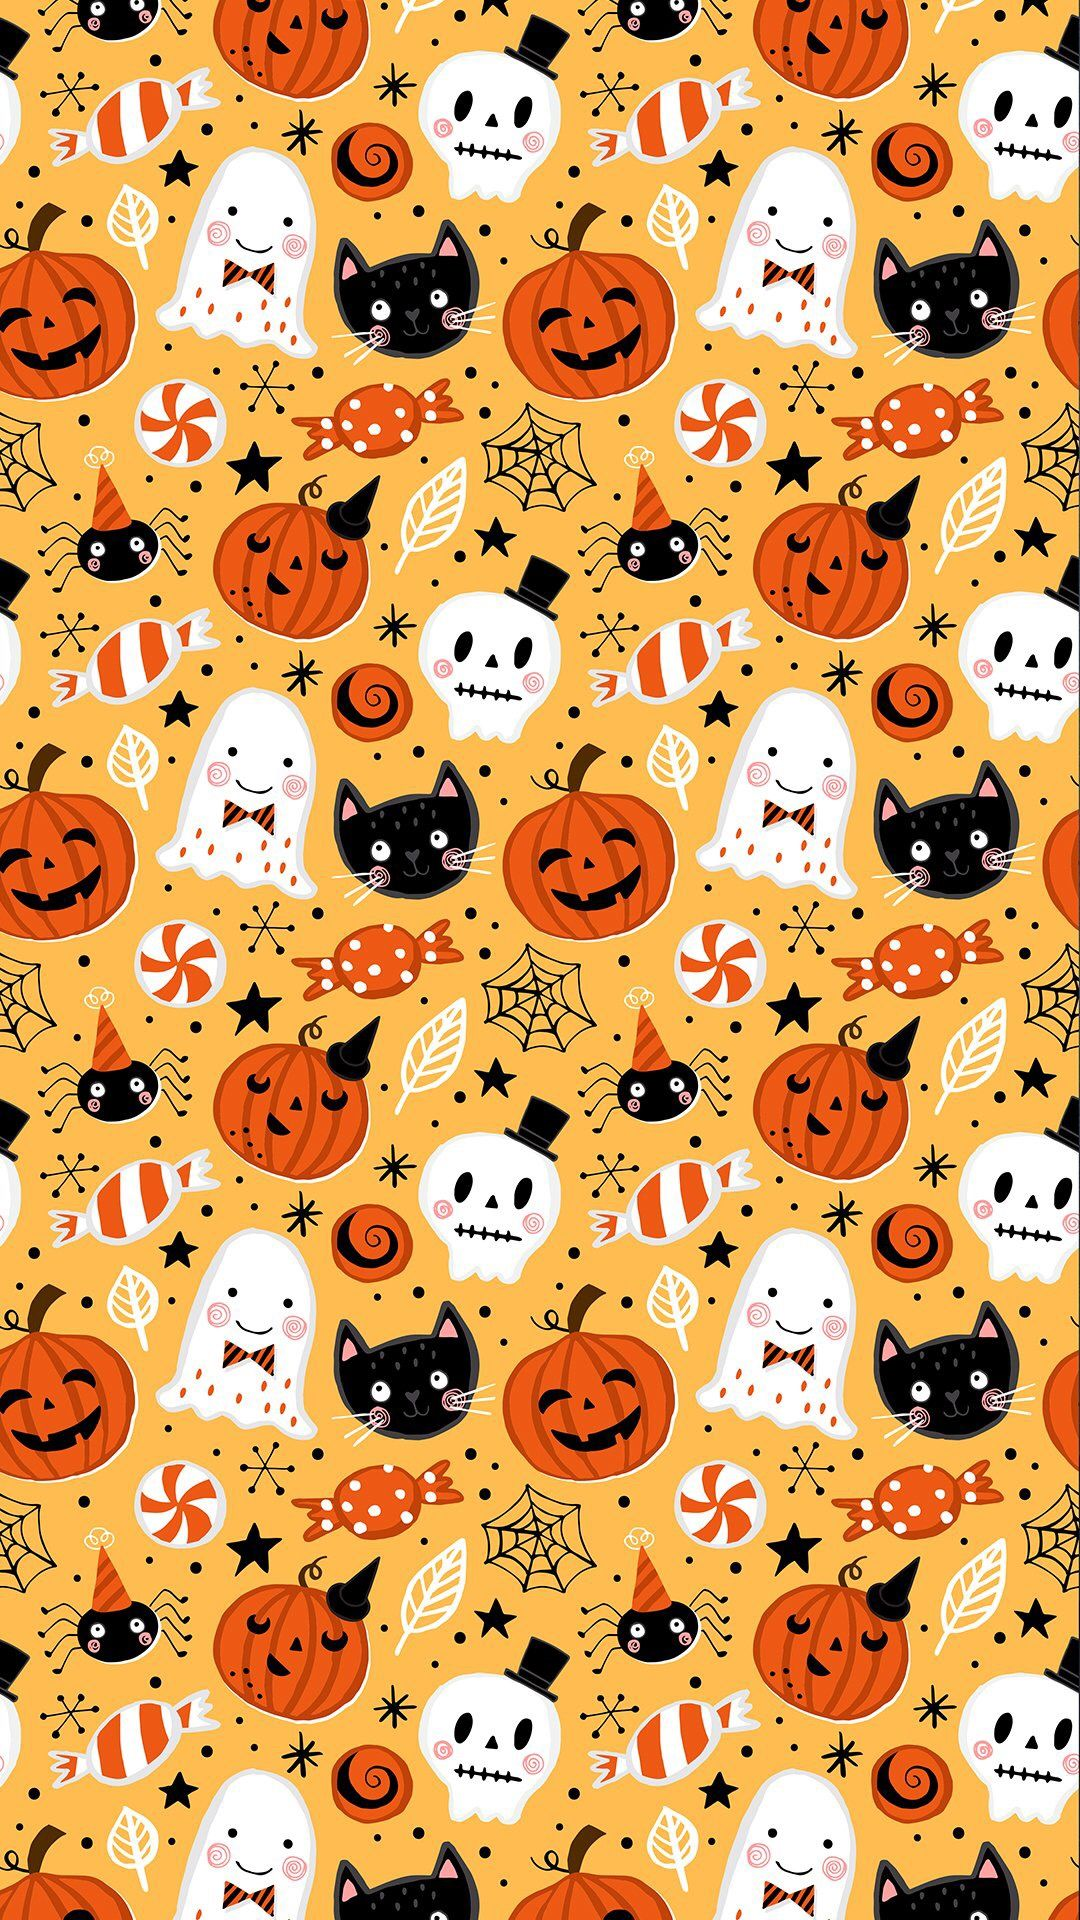 Pin By Spaceman Kade On Wallpapers Iphone Halloween Wallpaper Iphone Halloween Wallpaper Cute Halloween Wallpaper